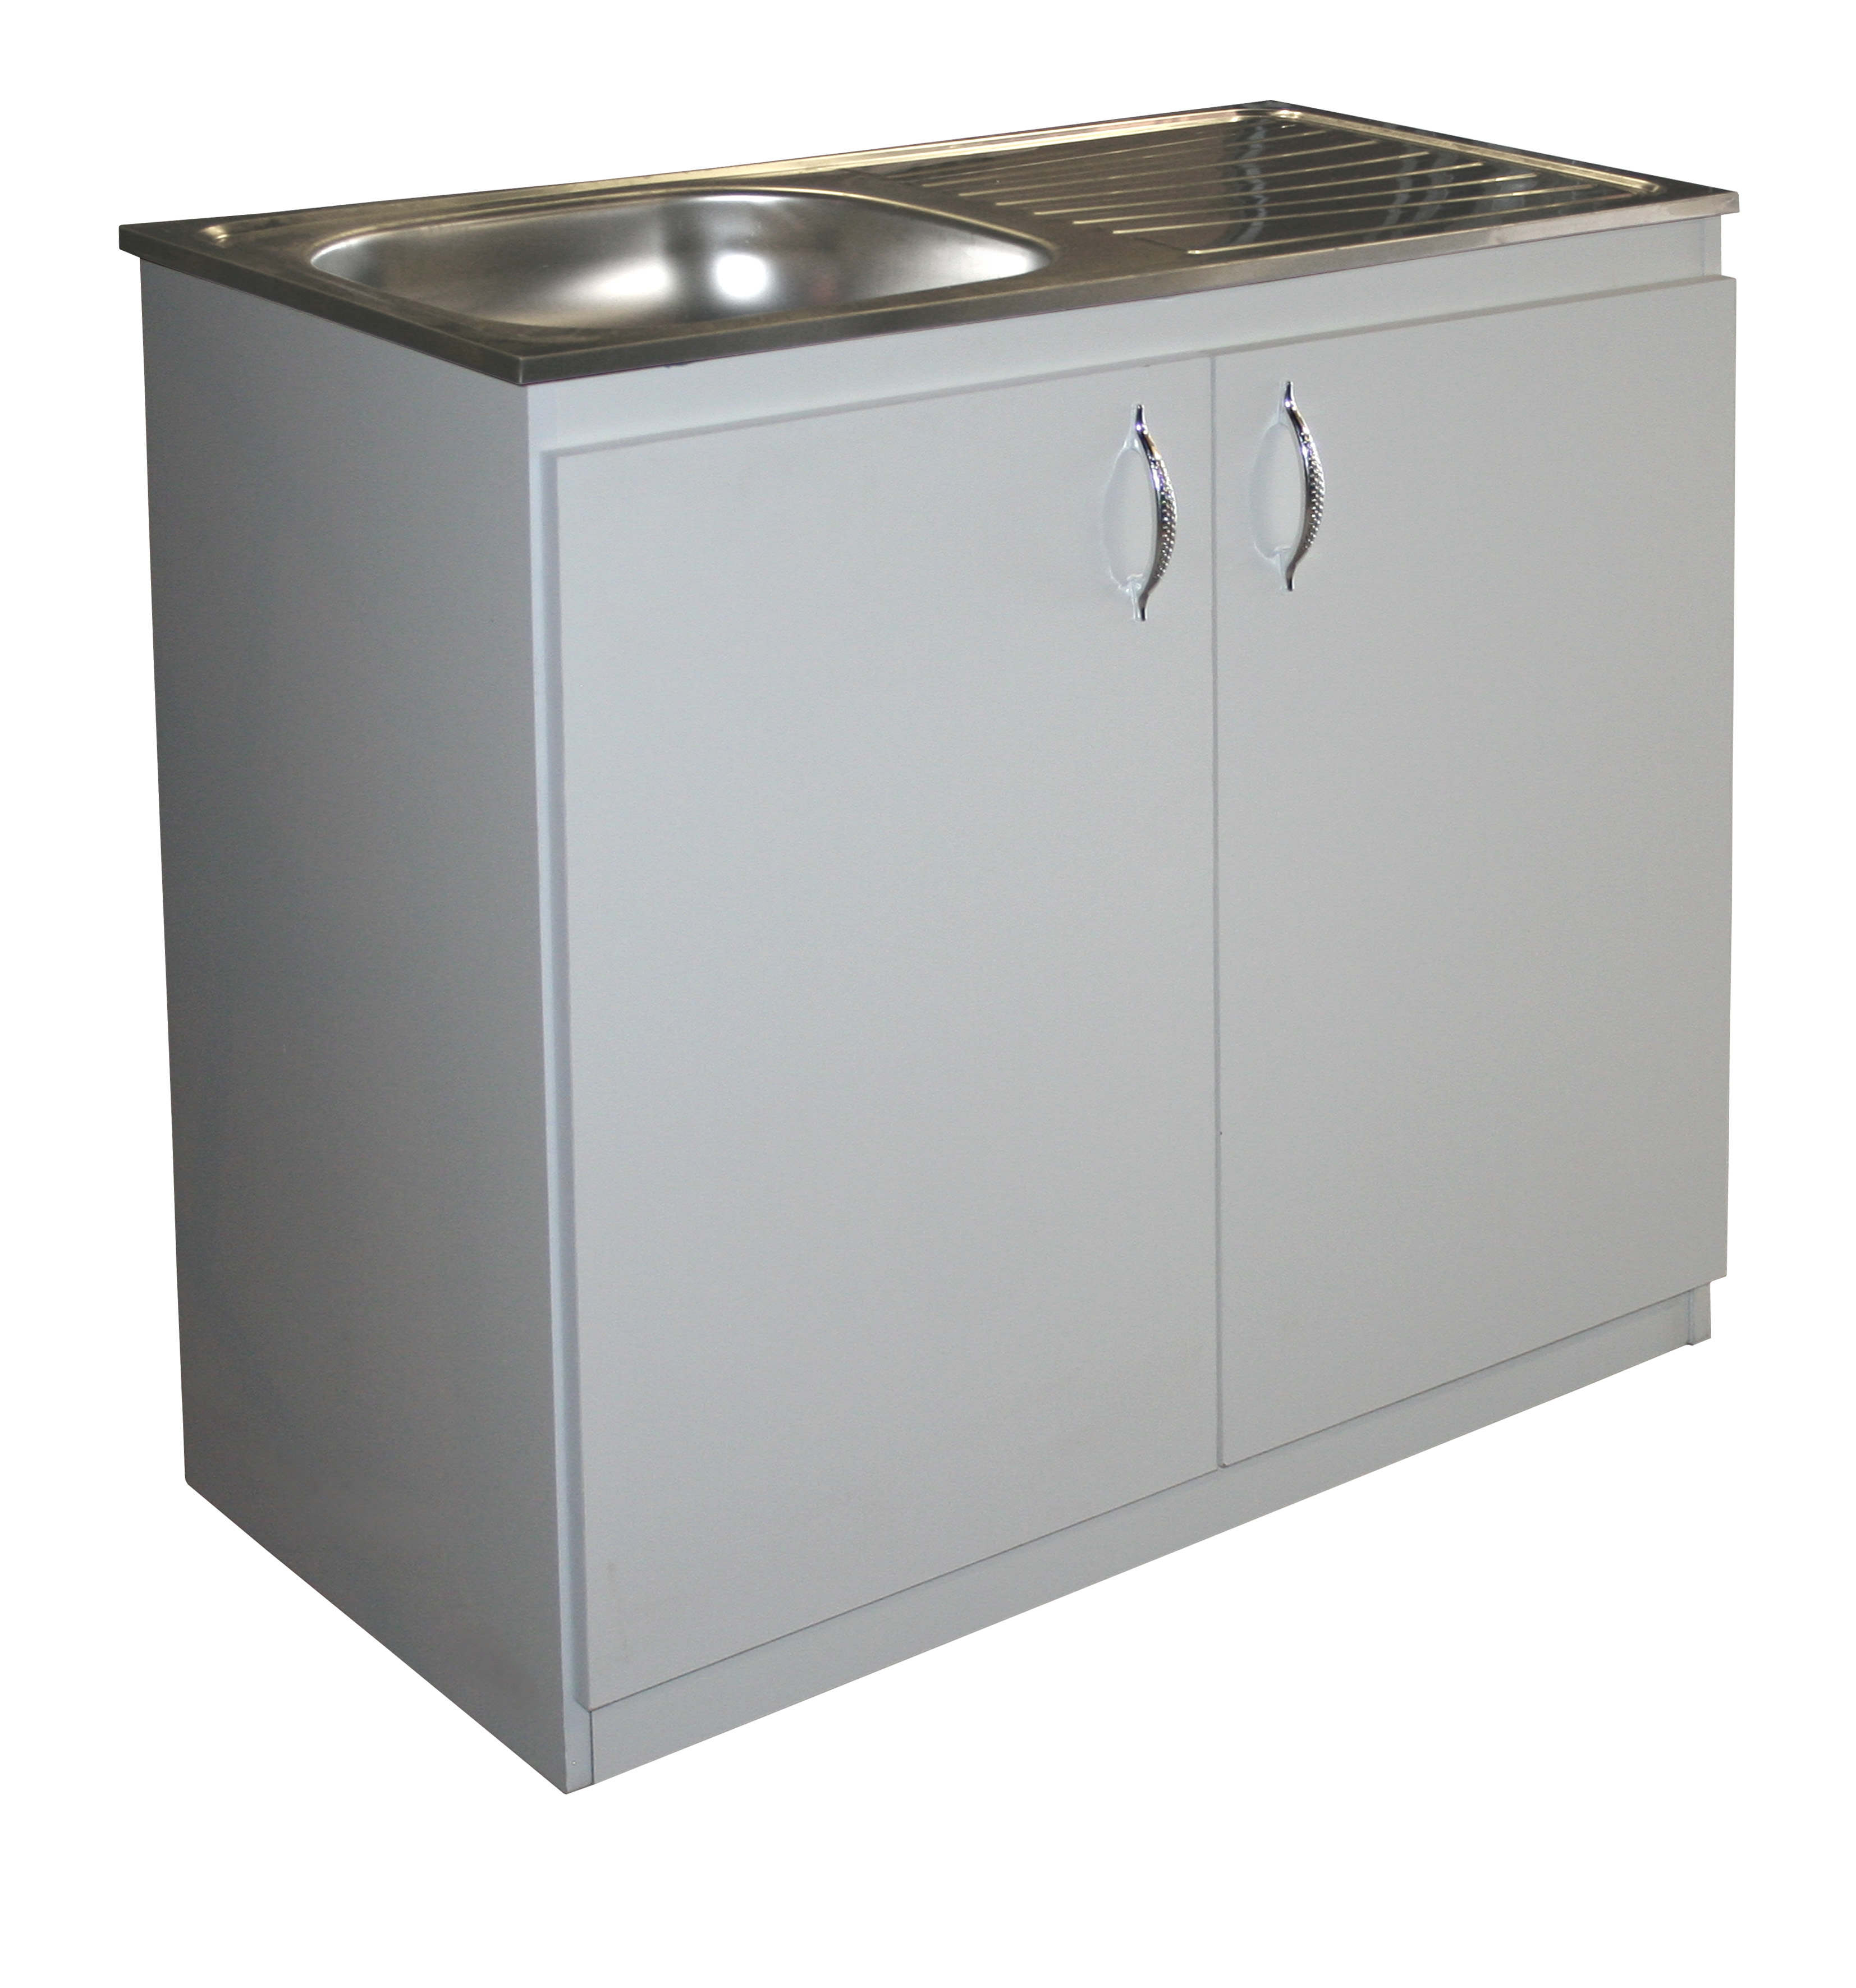 Sink Cabinet with stainless steel sink